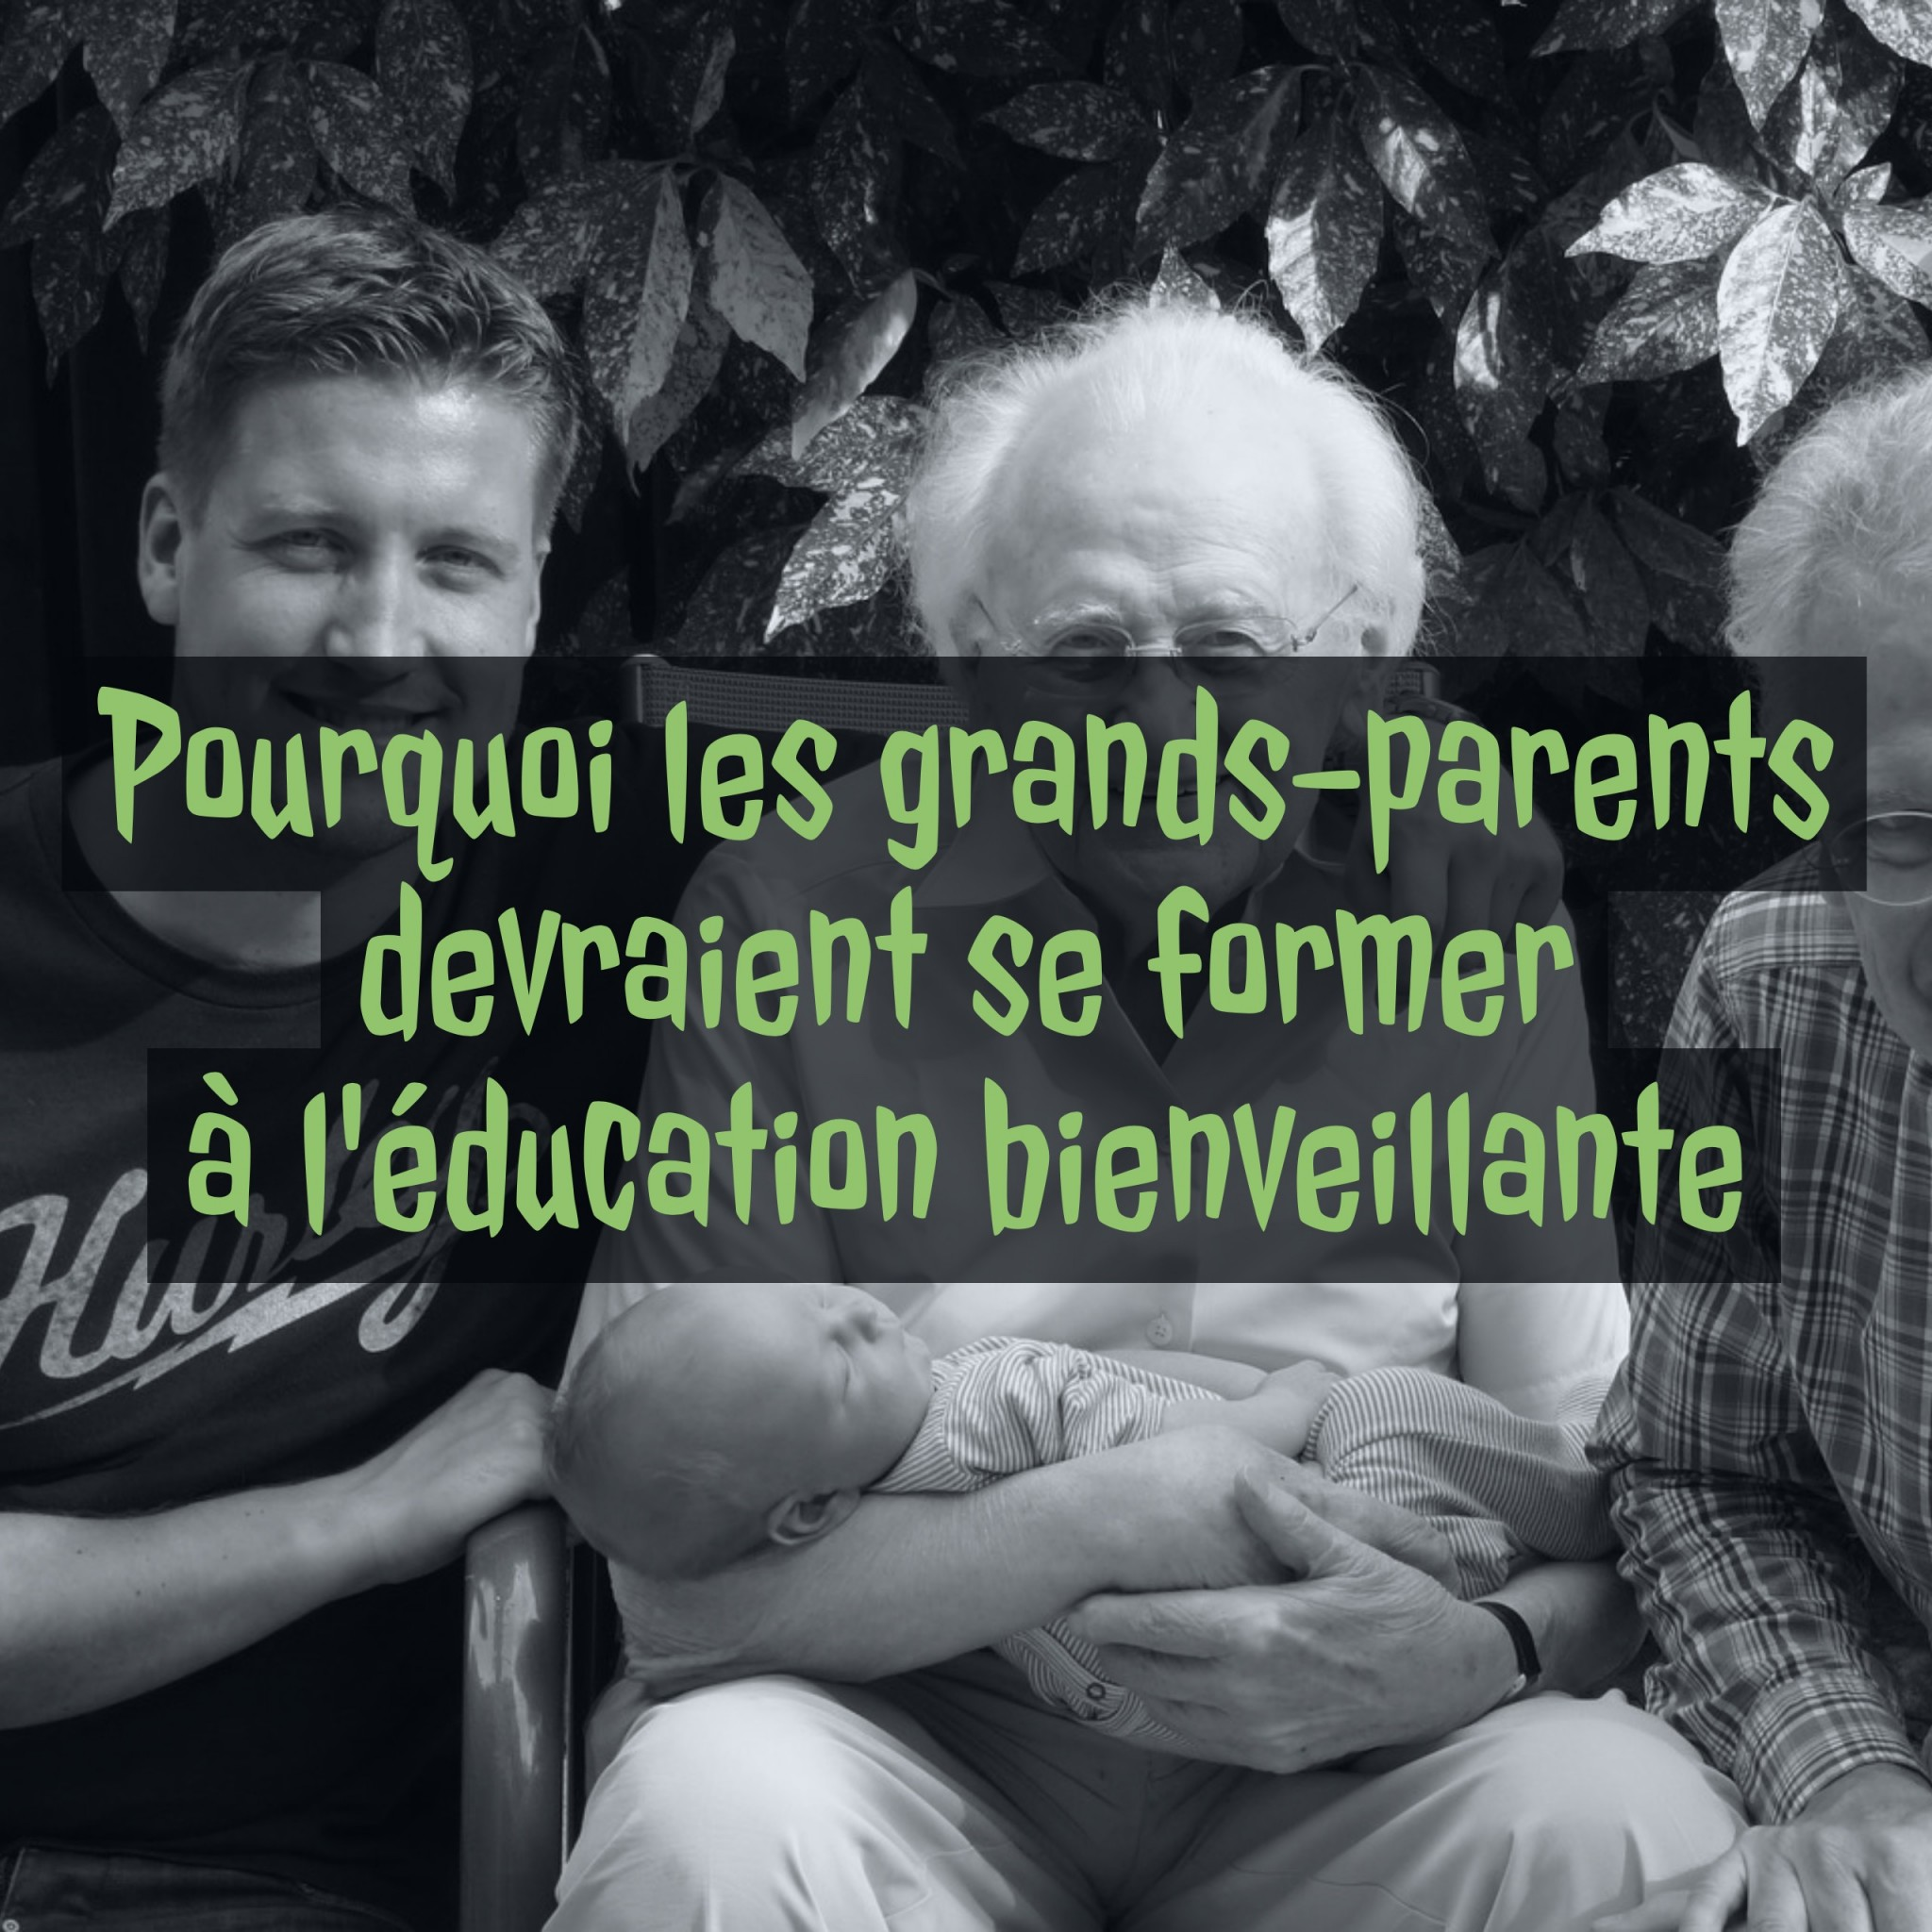 gands-parents-education-bienveillante